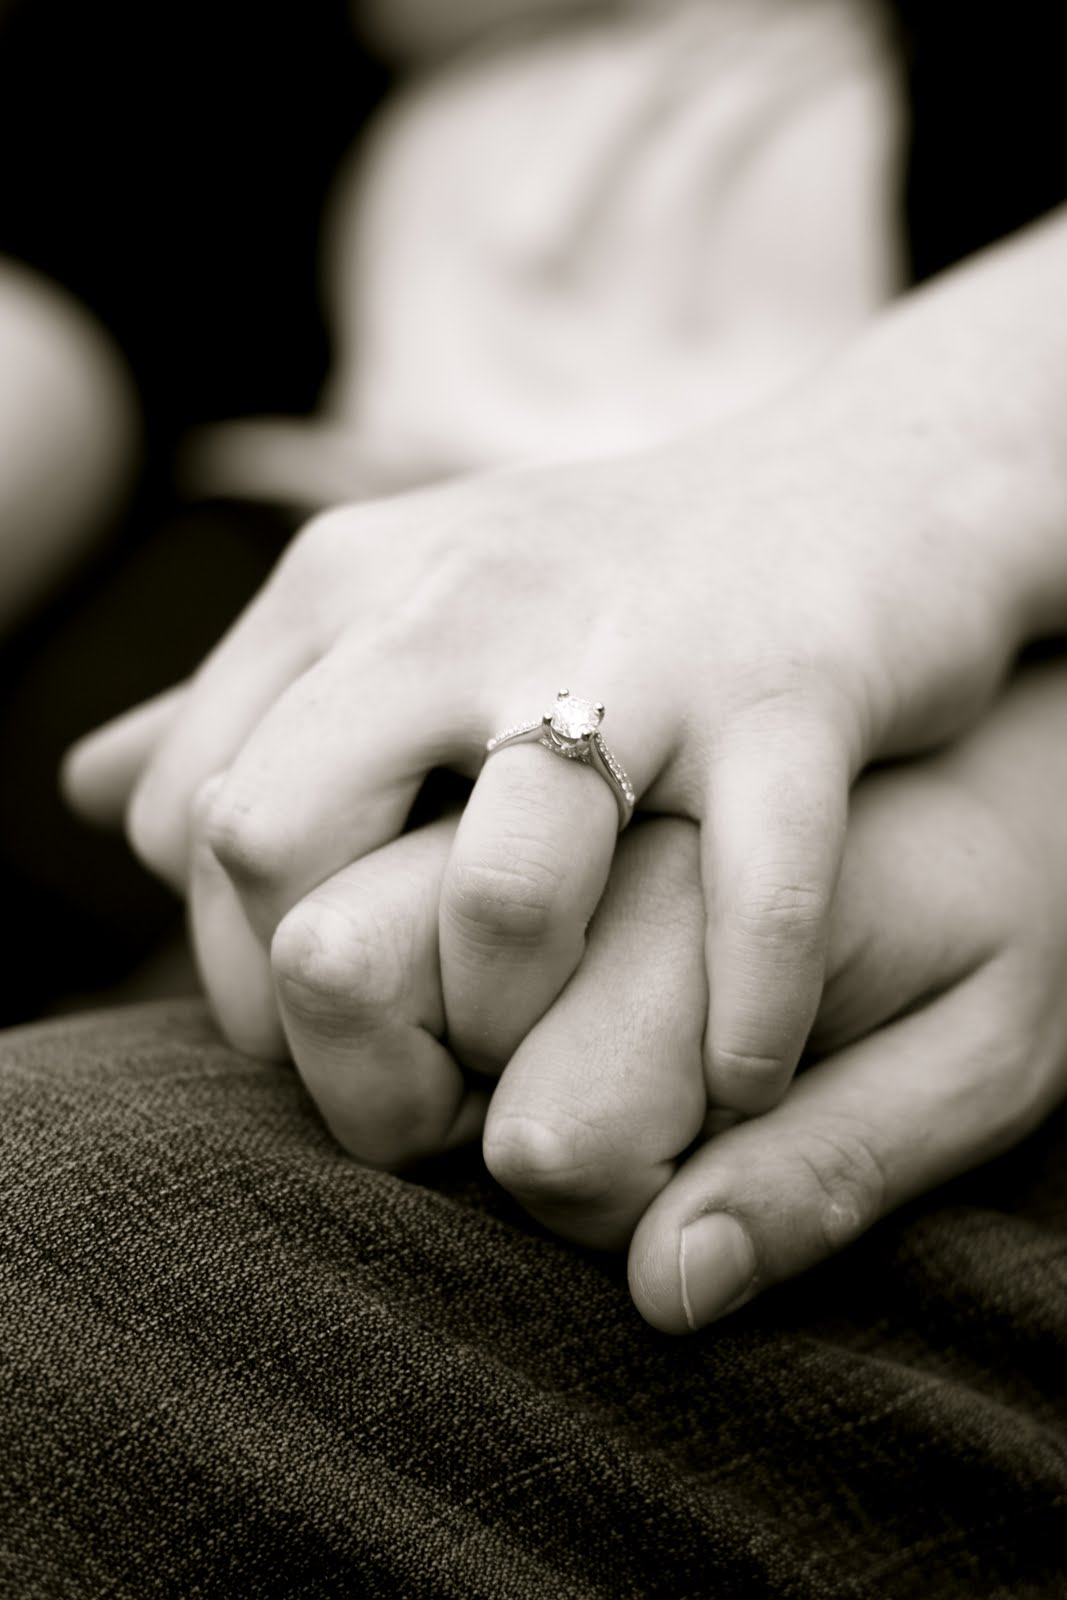 Pictures Of Beautiful Hands With Rings